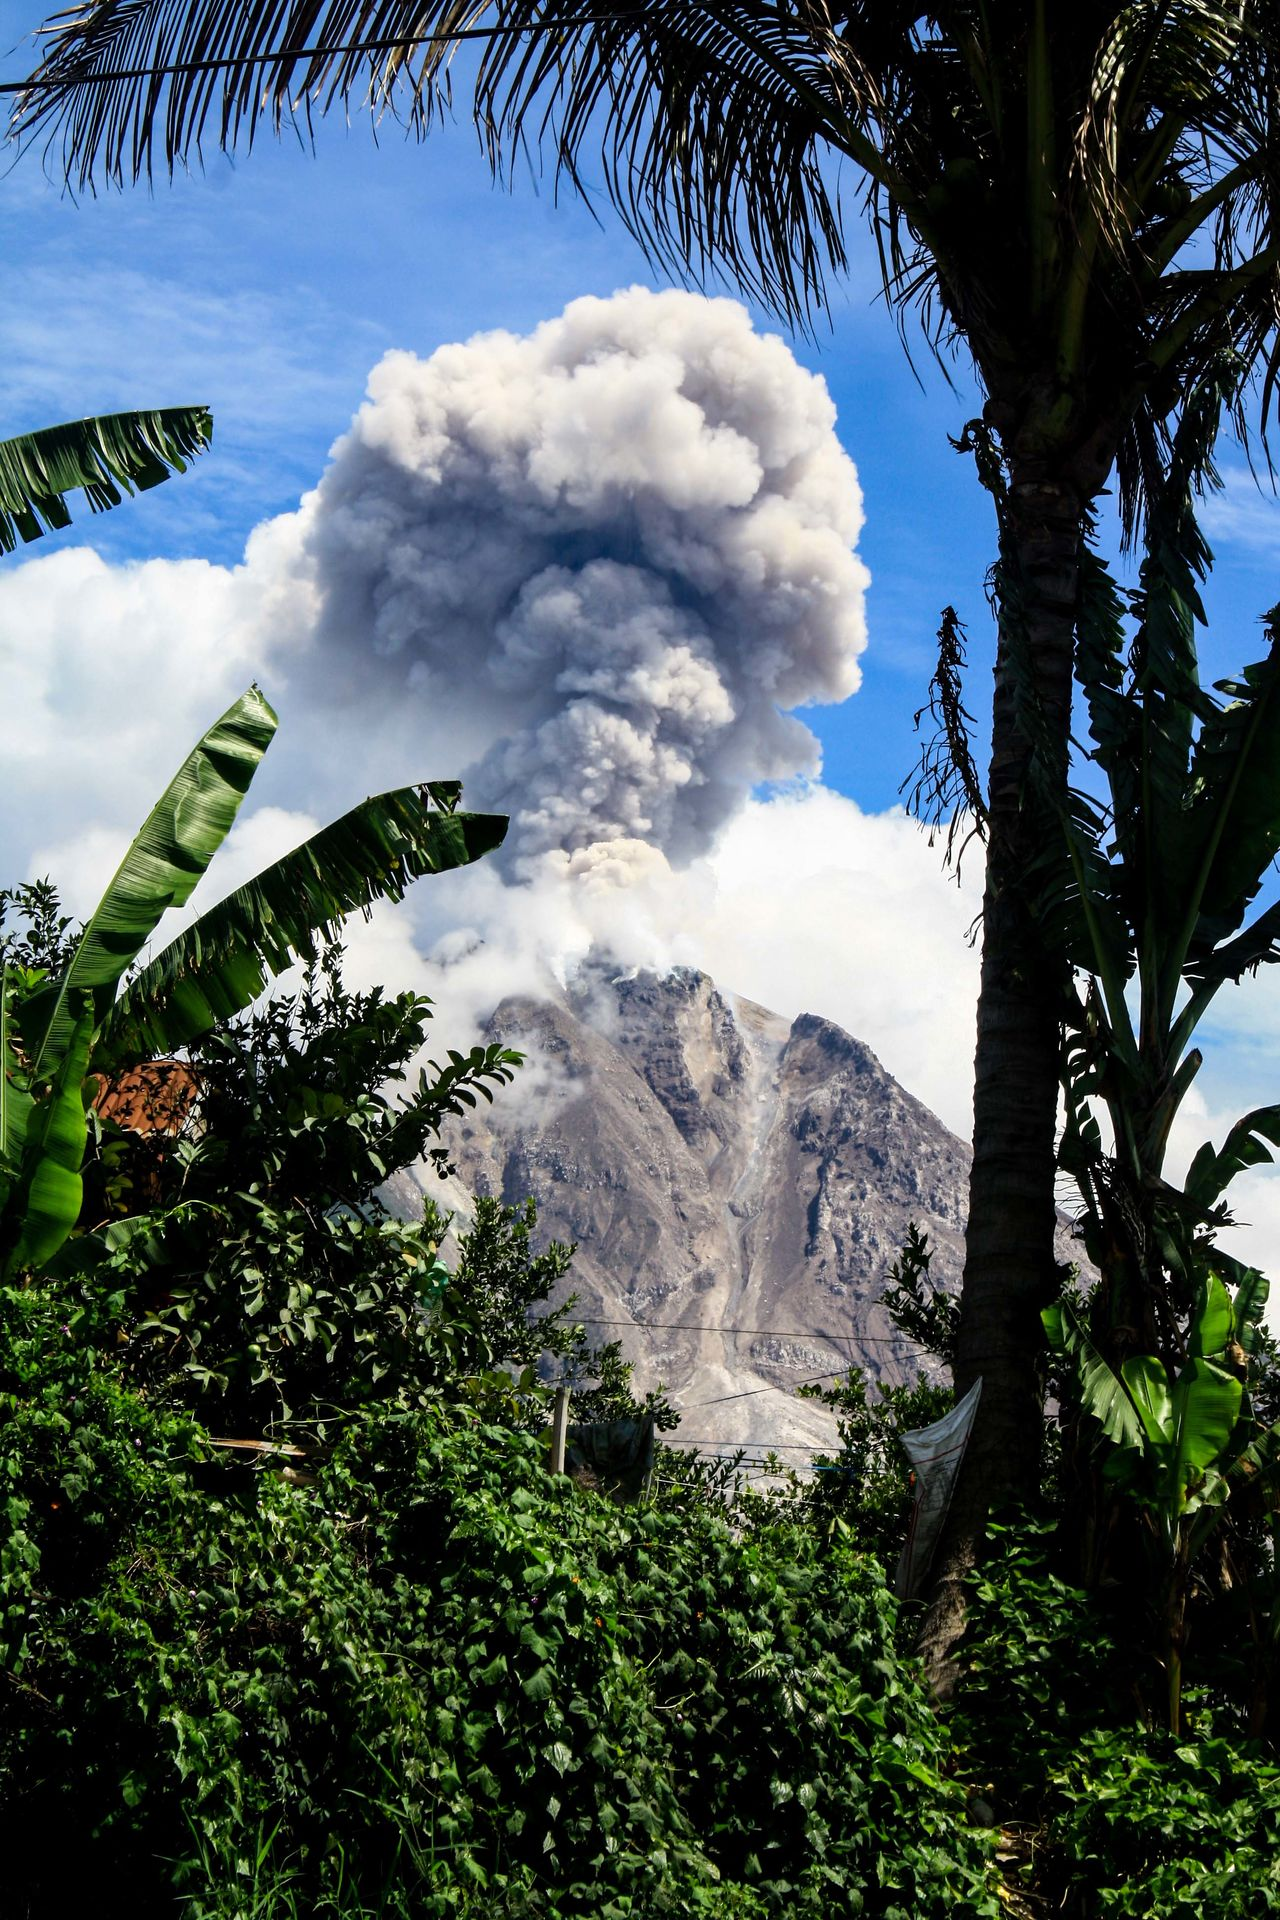 mount sinabung again issued a heal clouds with the status of the level IV Alert and resident were expected to keep the red zone, on 3rd September 2016 Enjoying Life EyeEm Best Shots EyeEm Gallery EyeEm Nature Lover Eyeemphoto Jurnalist Photojurnalism Photojurnalist Sinabung Sinabung Sumatera Utara Sinabungeruption The Photojournalist - 2017 EyeEm Awards